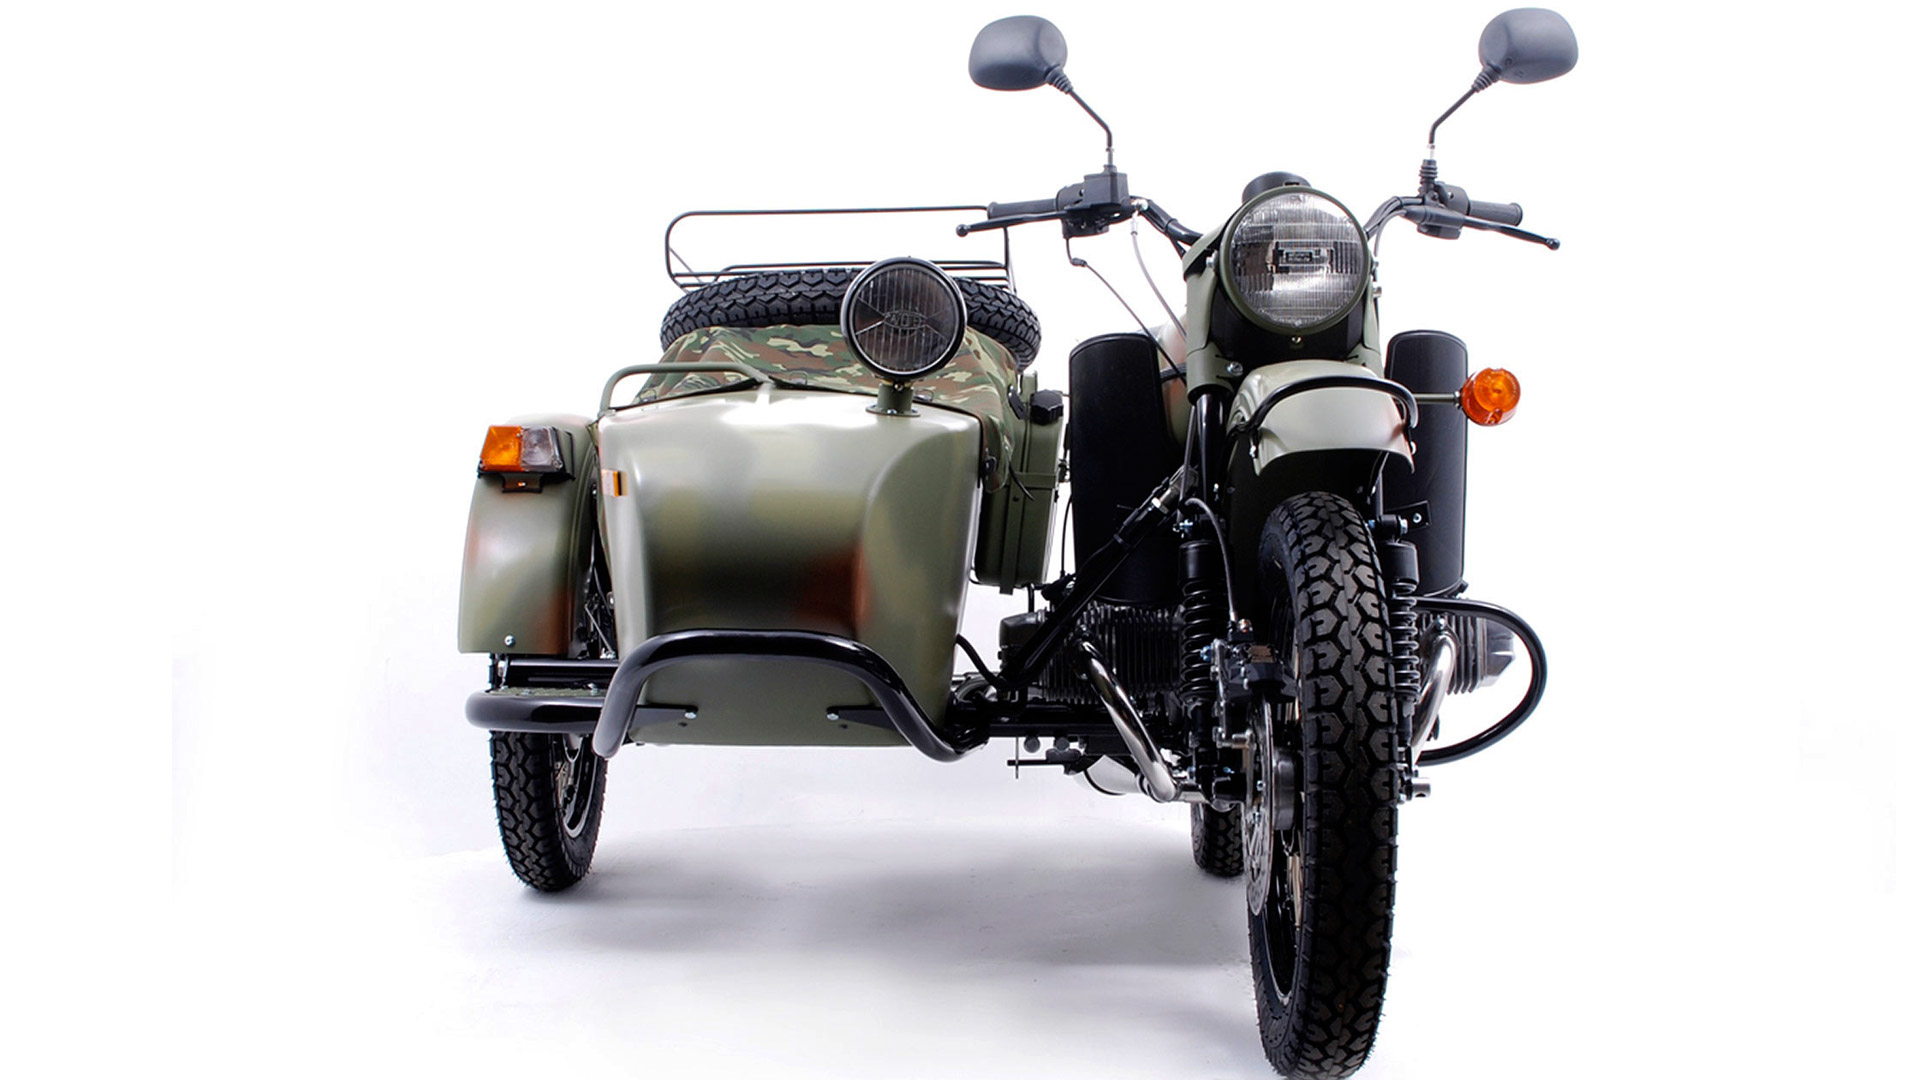 Ural M-63 with sidecar 1977 images #127207